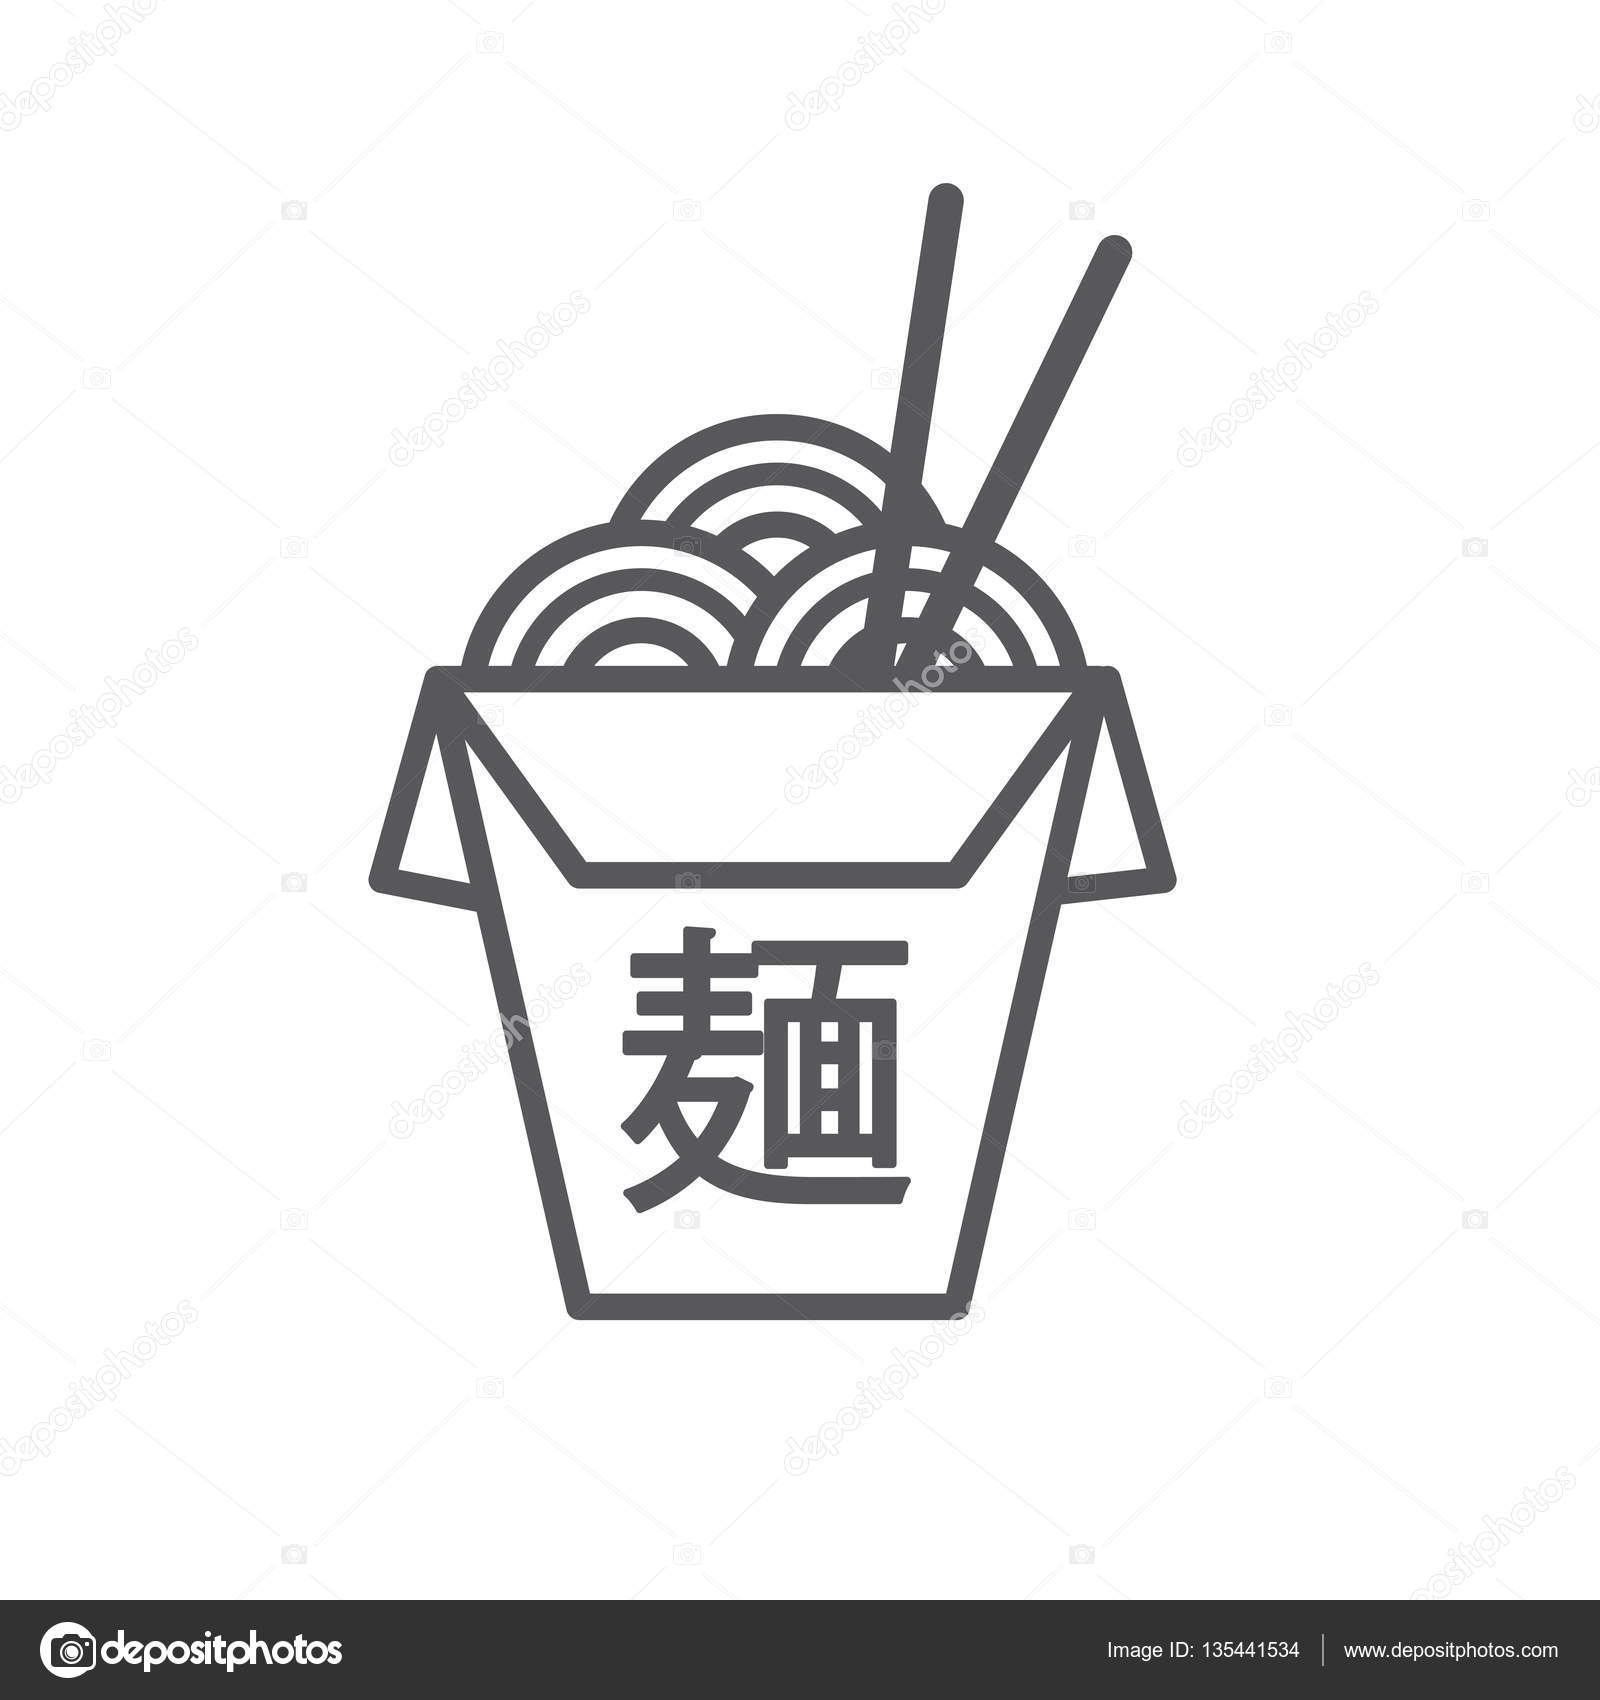 How to say colouring book in japanese - Chinese Or Asian Takeout Box With Noodles And Japanese Kanji That Say Noodles Vector By Bearsky23 Yahoo Com